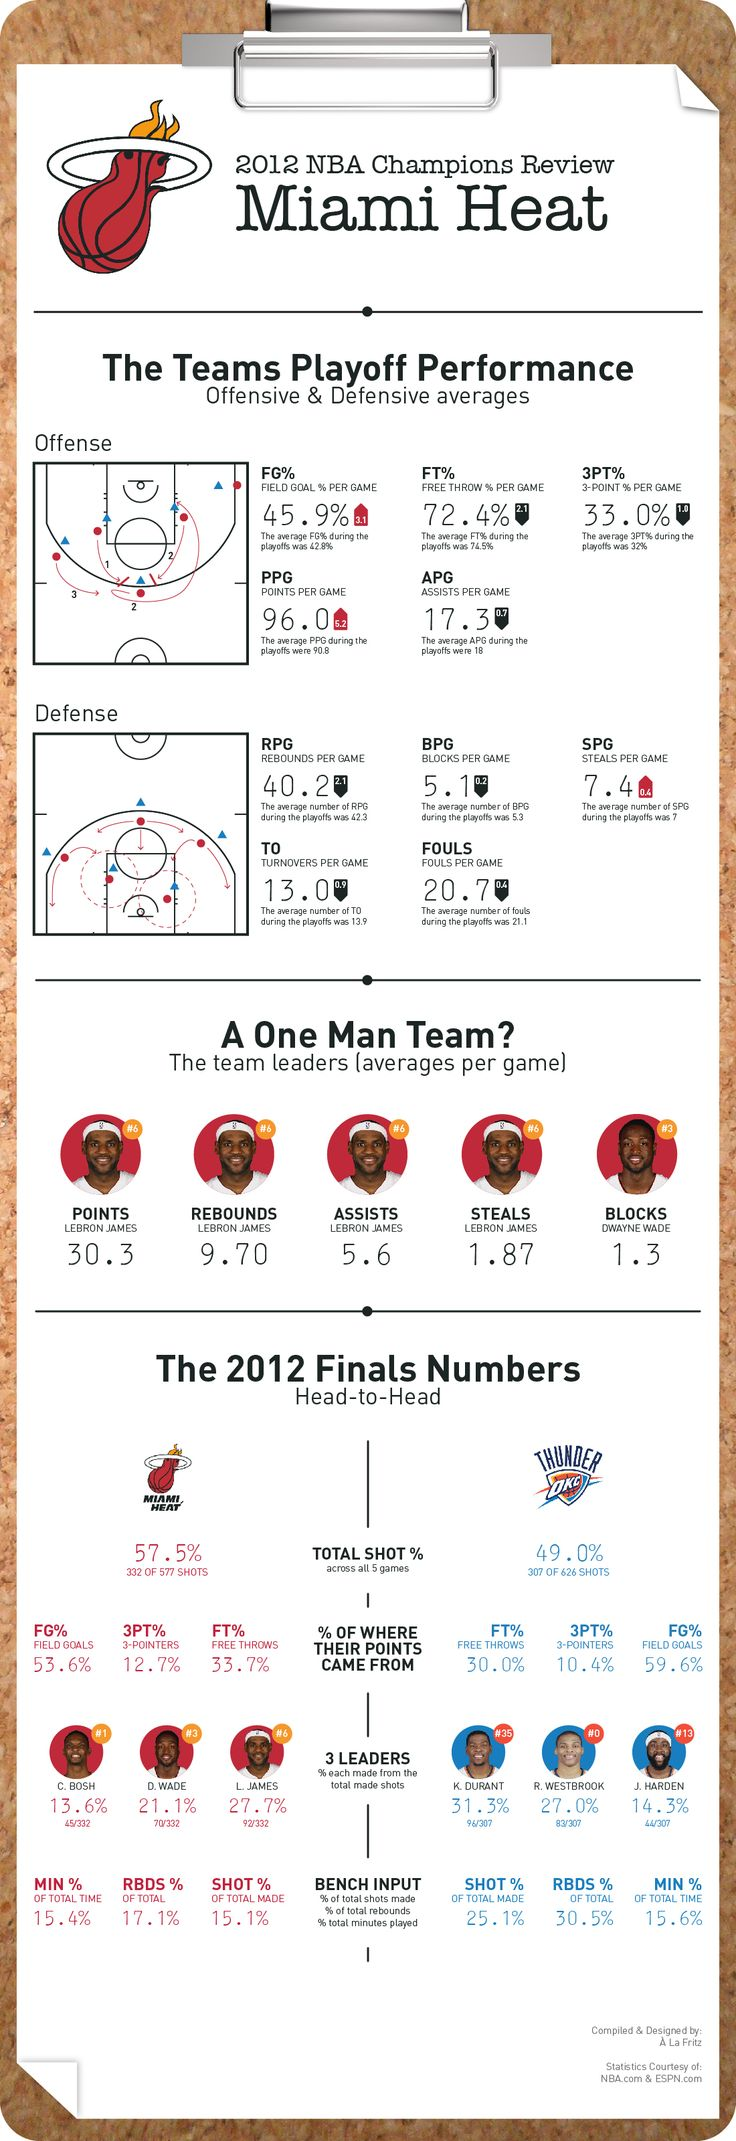 Some stats and figures about the winning team, the Miami Heat.